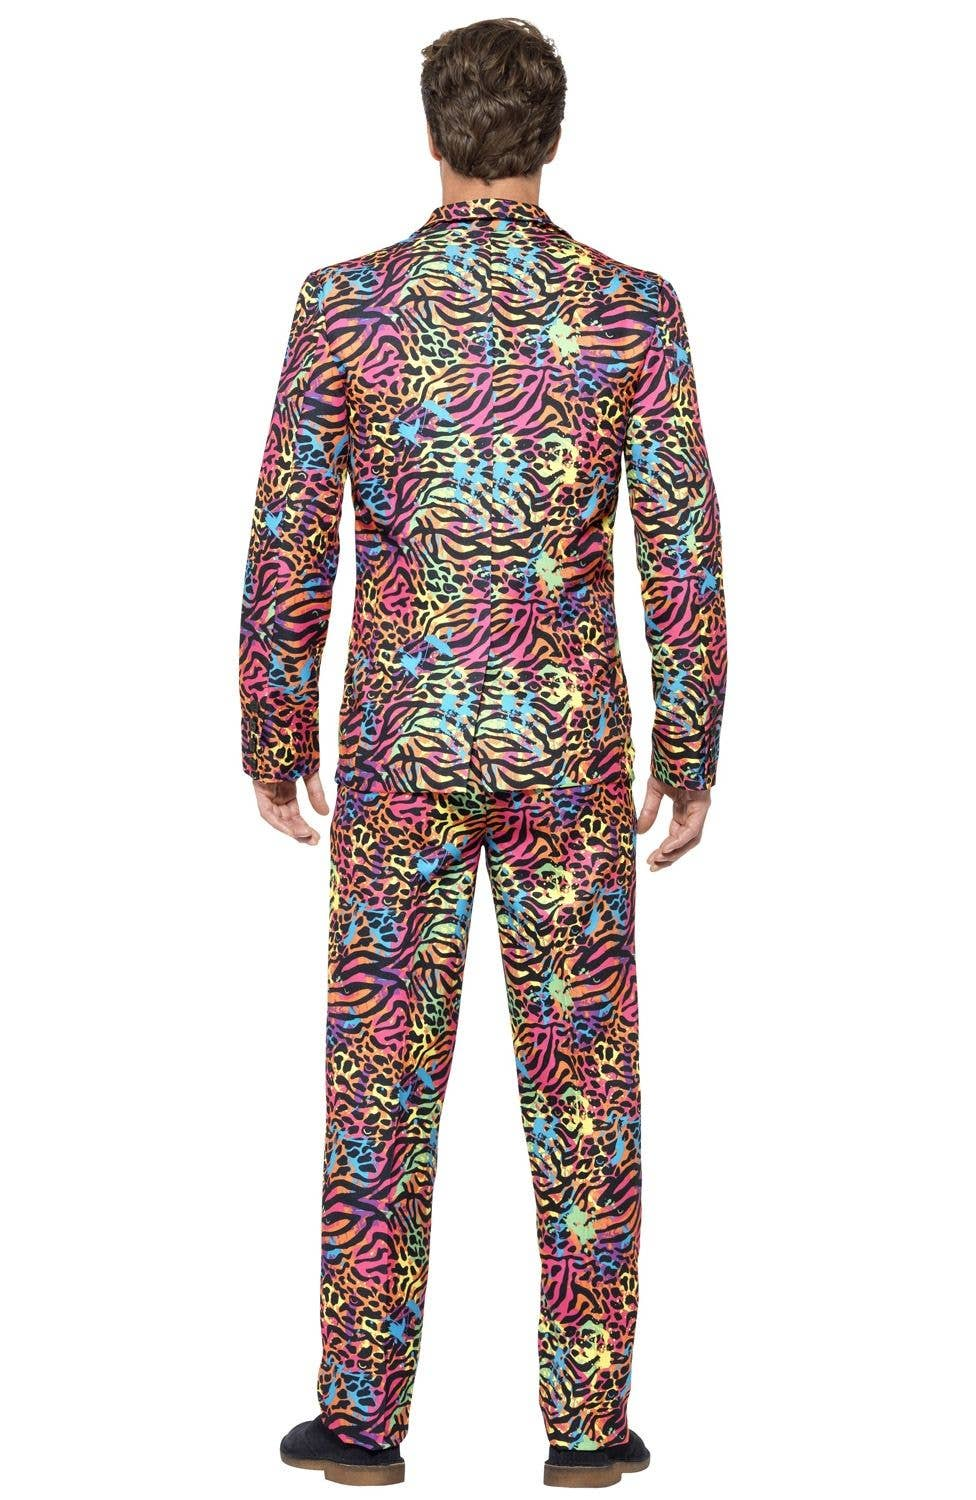 fe22f2527b51ca Neon Animal Print Stand Out Suit | Bright Coloured Men's Costume Suit